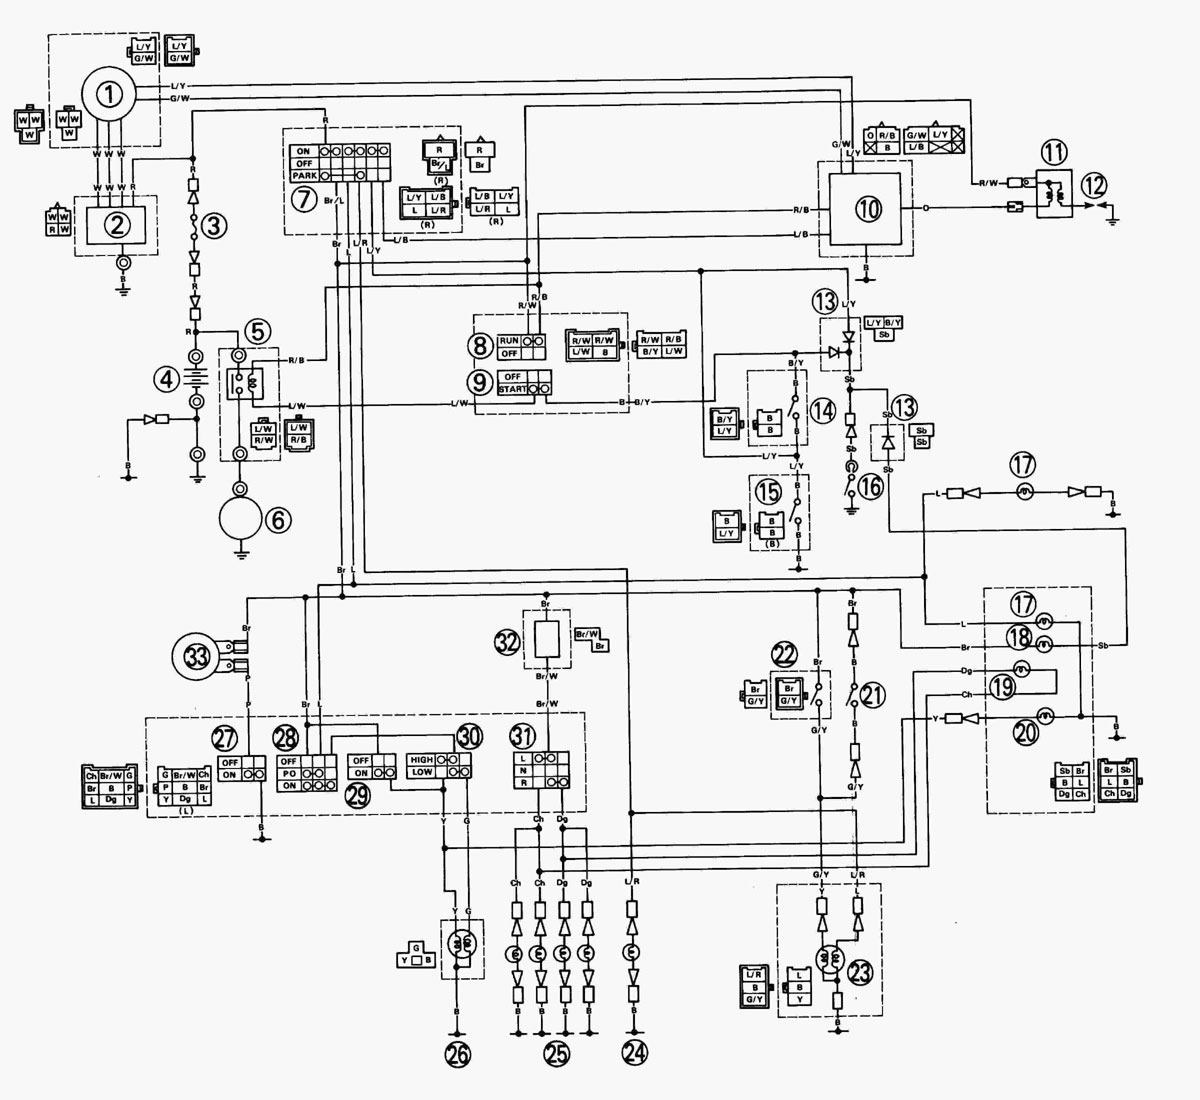 [DIAGRAM] Yamaha Yfs200 Blaster Wiring Diagram 1994 FULL